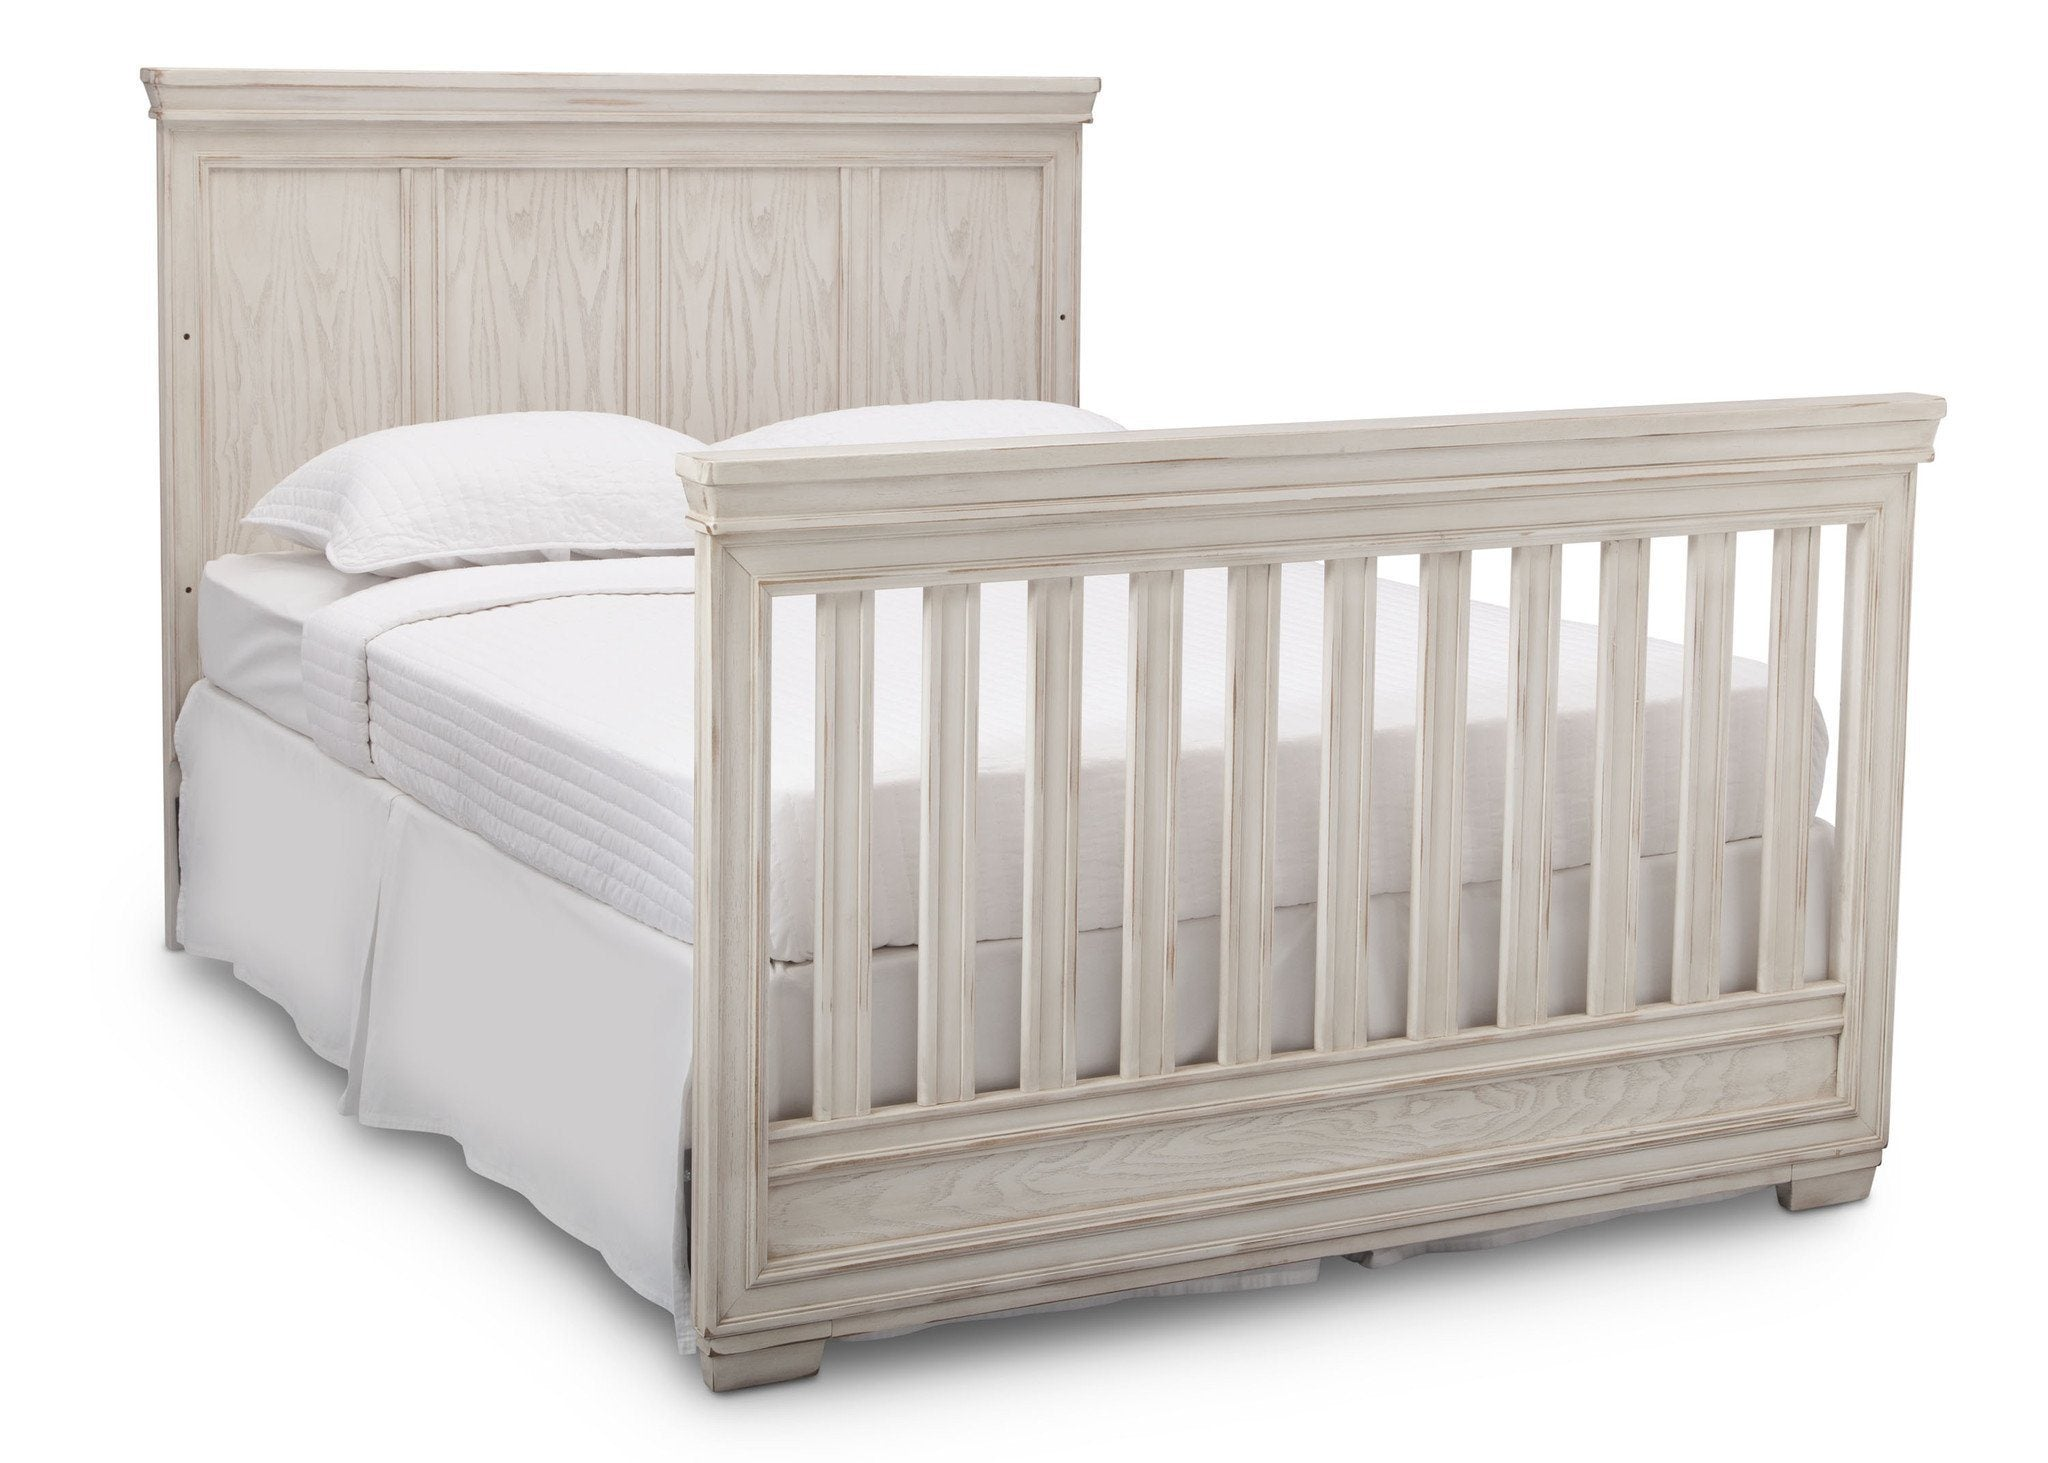 Simmons Kids Antique White (122) Ravello Crib 'N' More, Angled Conversion to Full Size Bed View, b6b